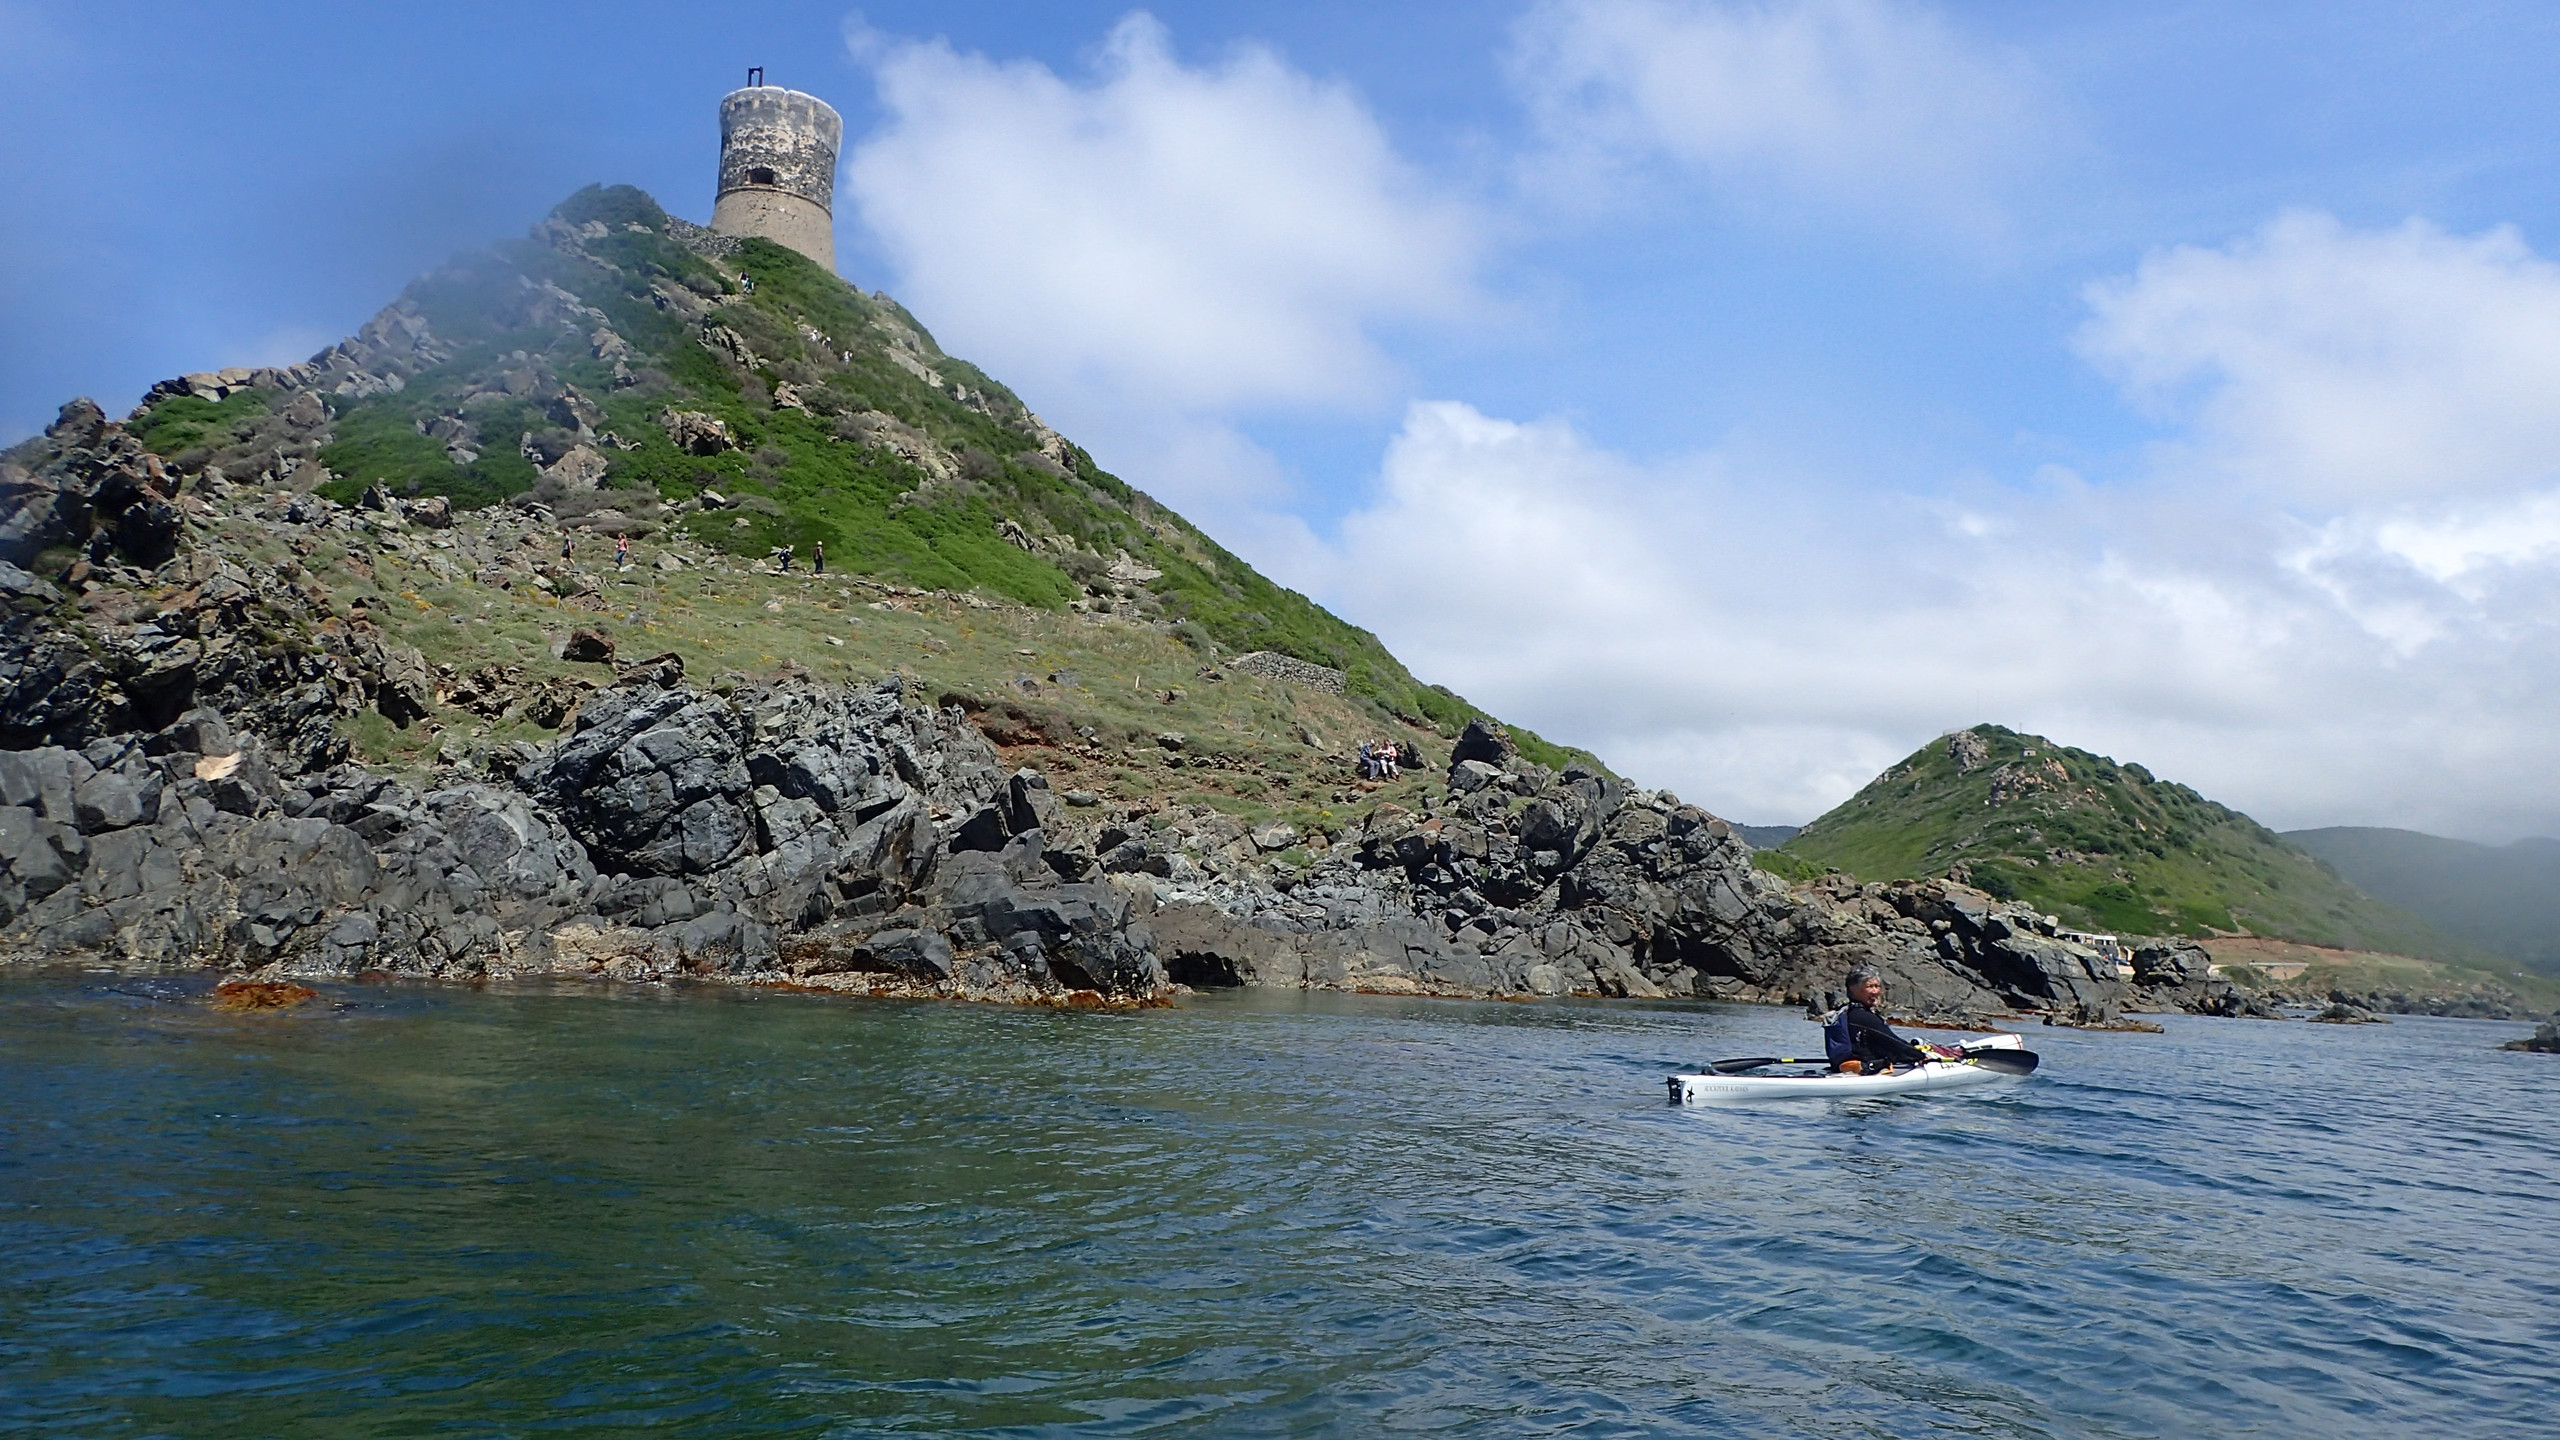 Towers and headlands